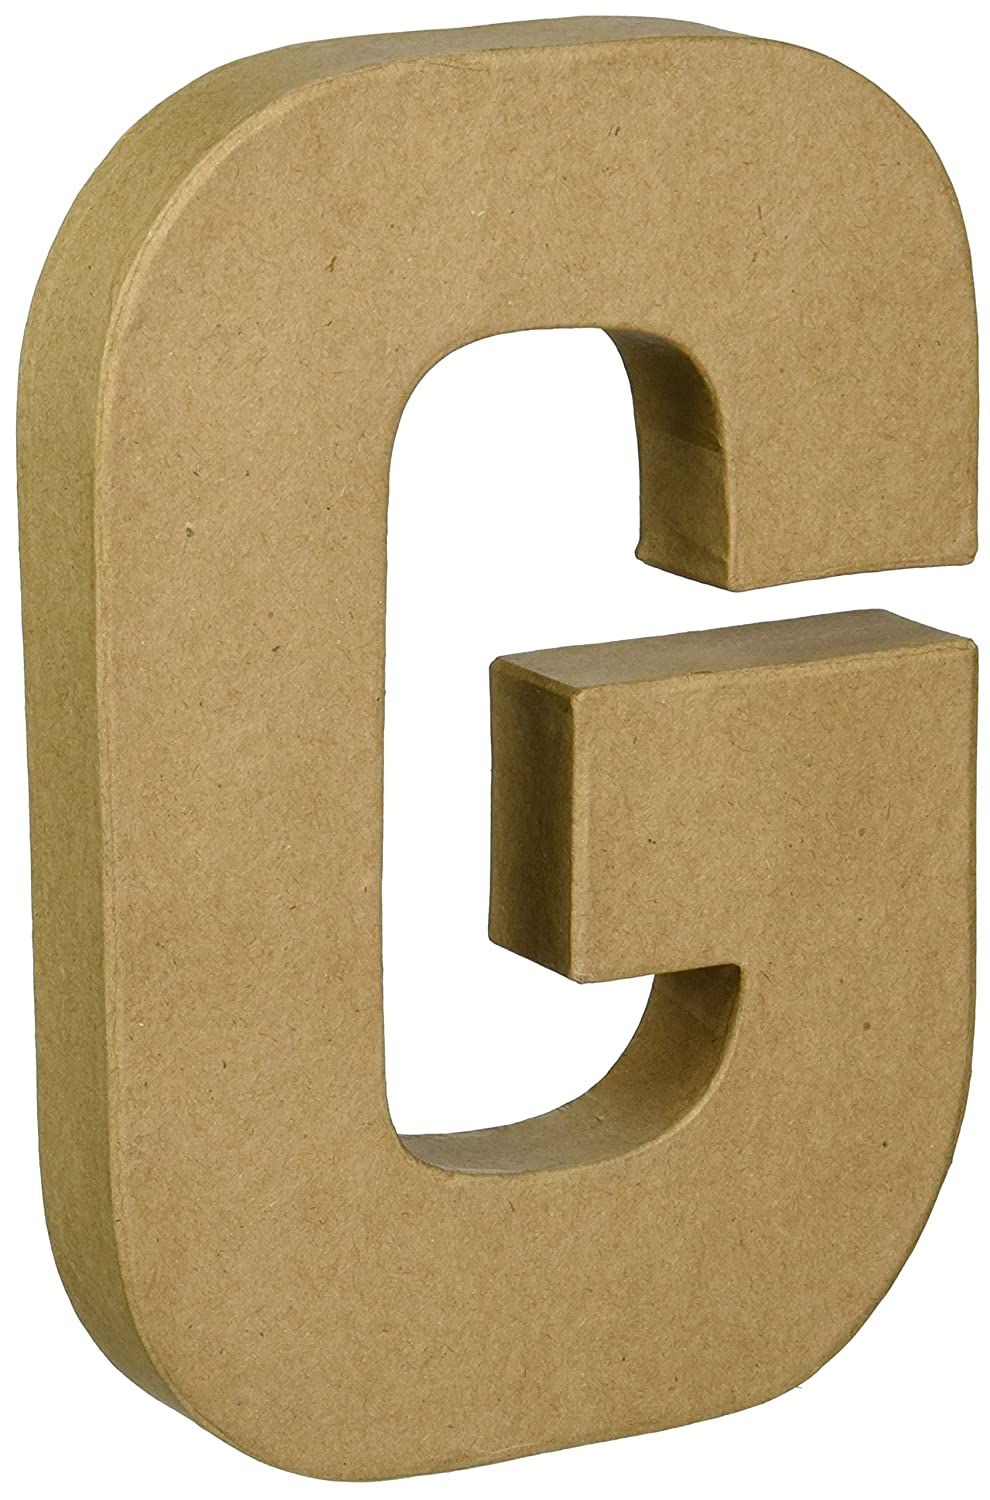 Darice Paper-Mache Letter 8X5.5, G Notions - In Network 66543